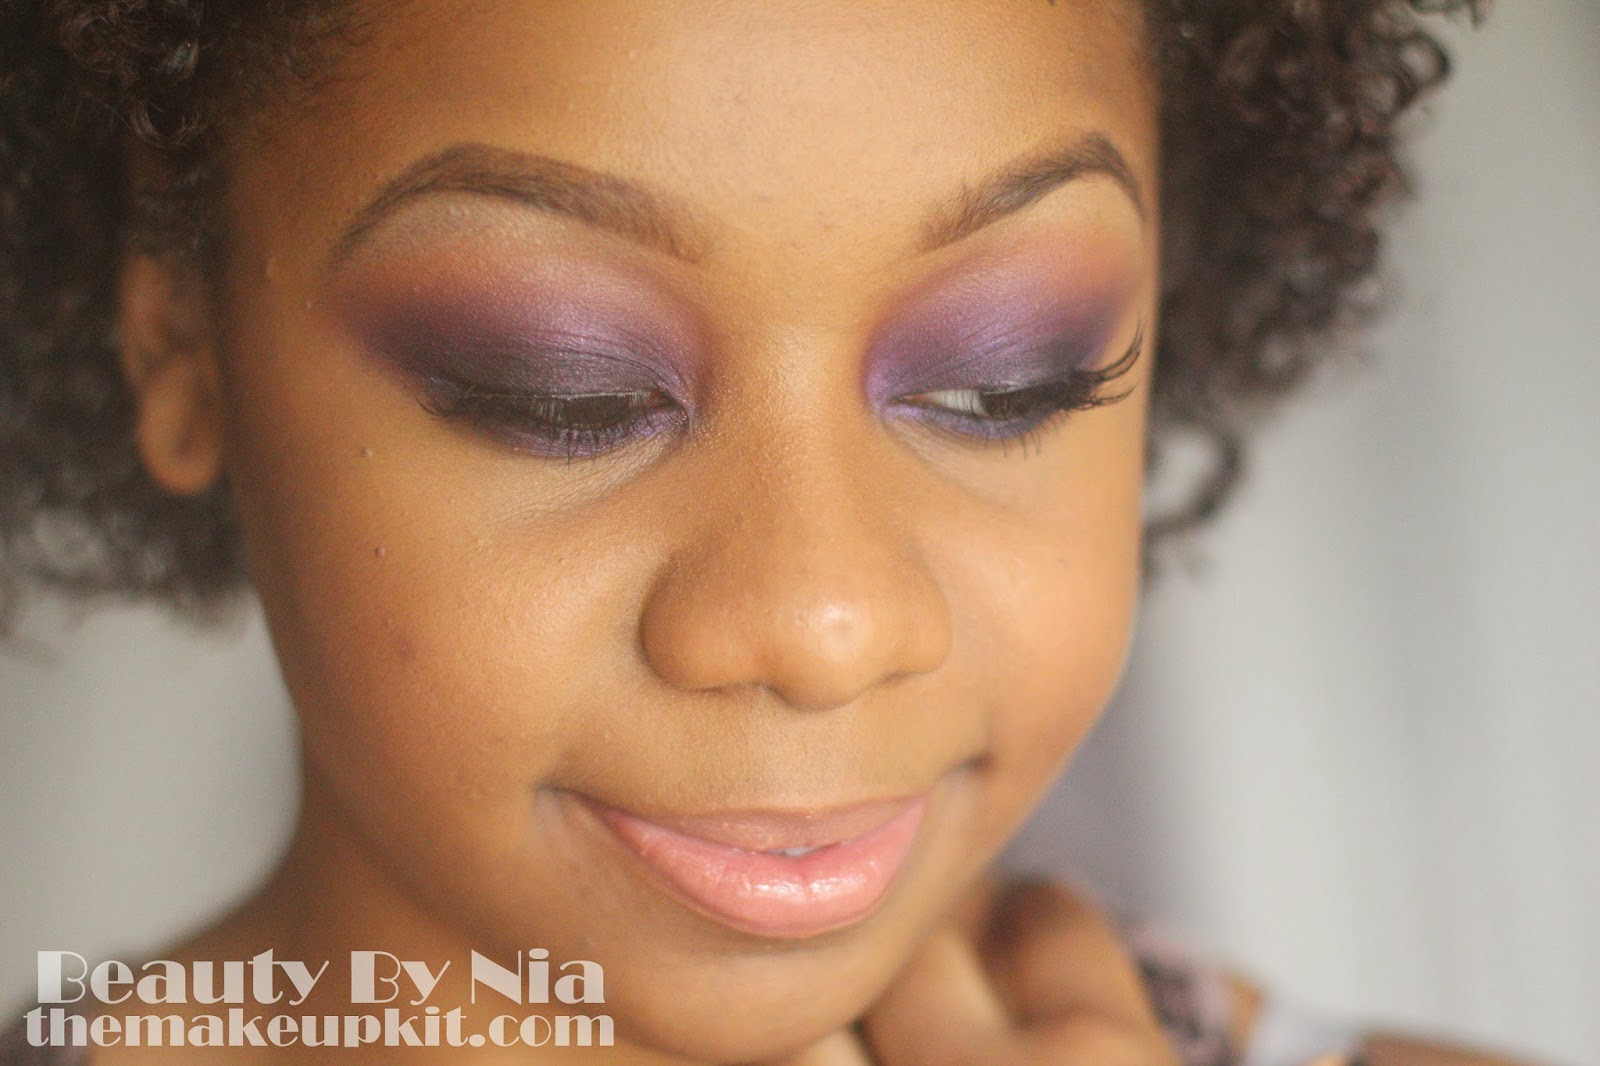 Smoked out purple eye make up look 4